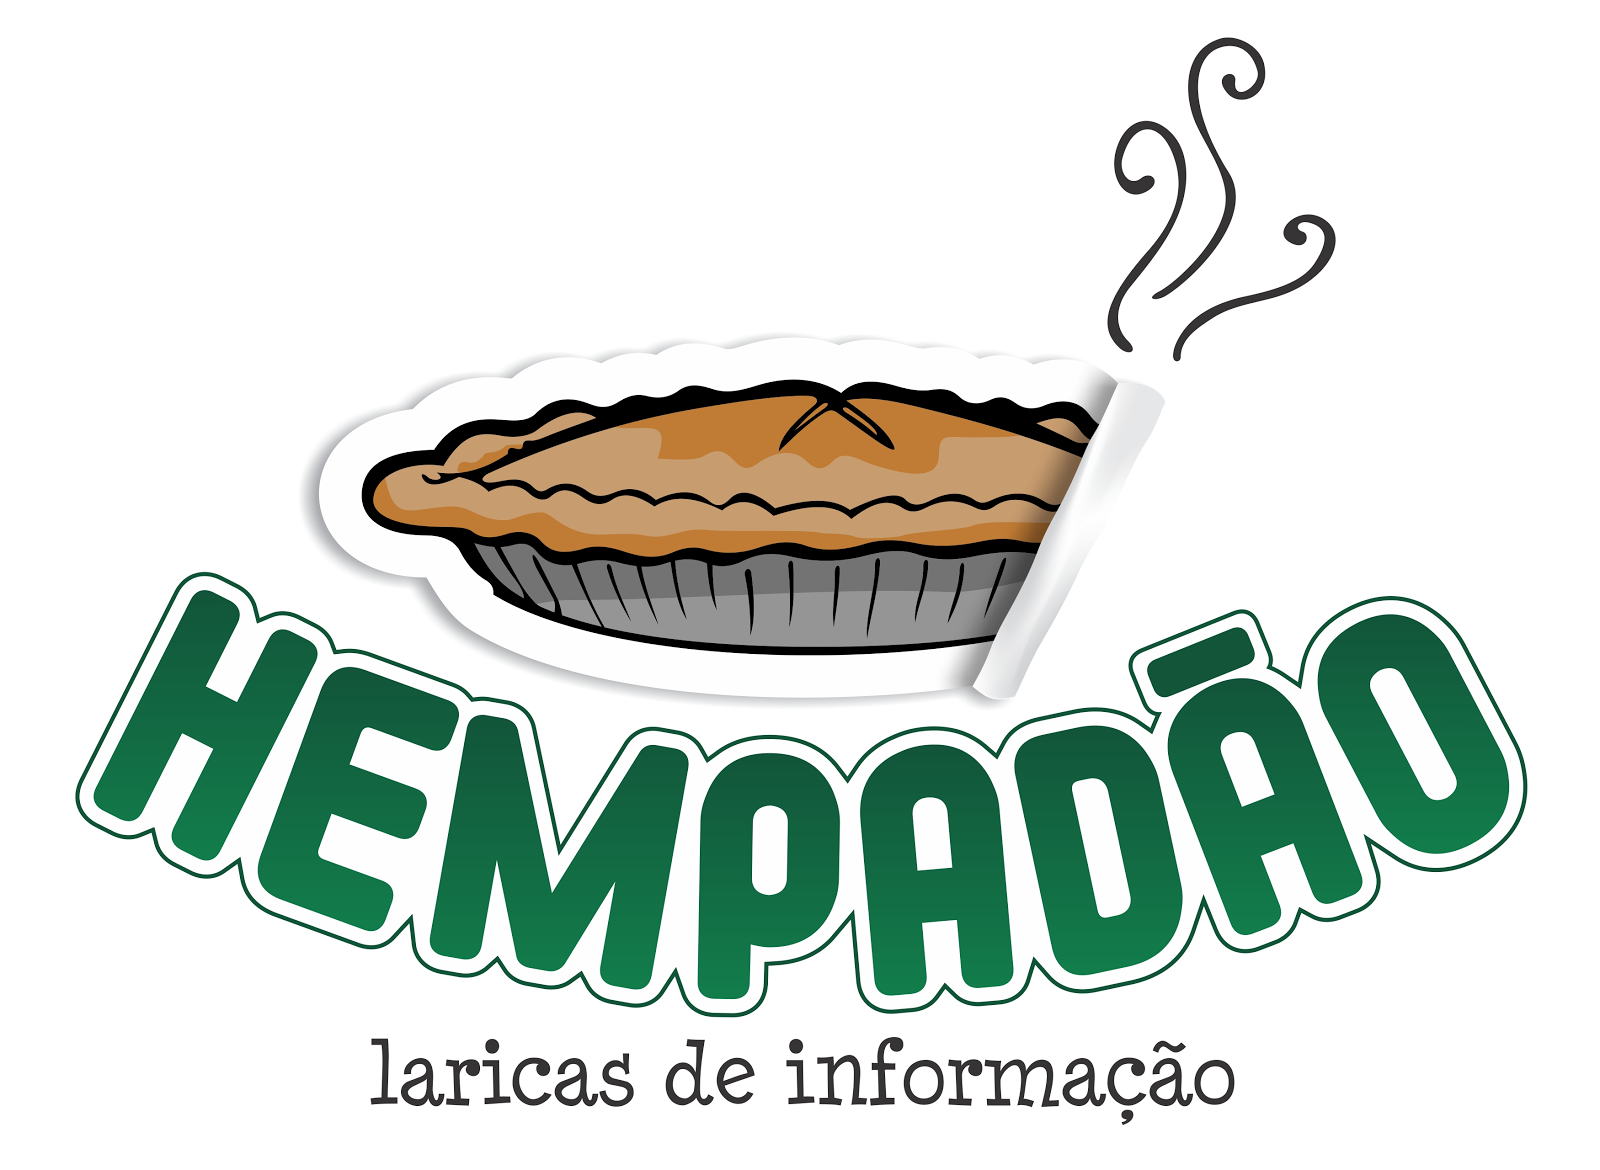 Hempadão Blog: Laricas de Informação sobre Maconha e Cannabis